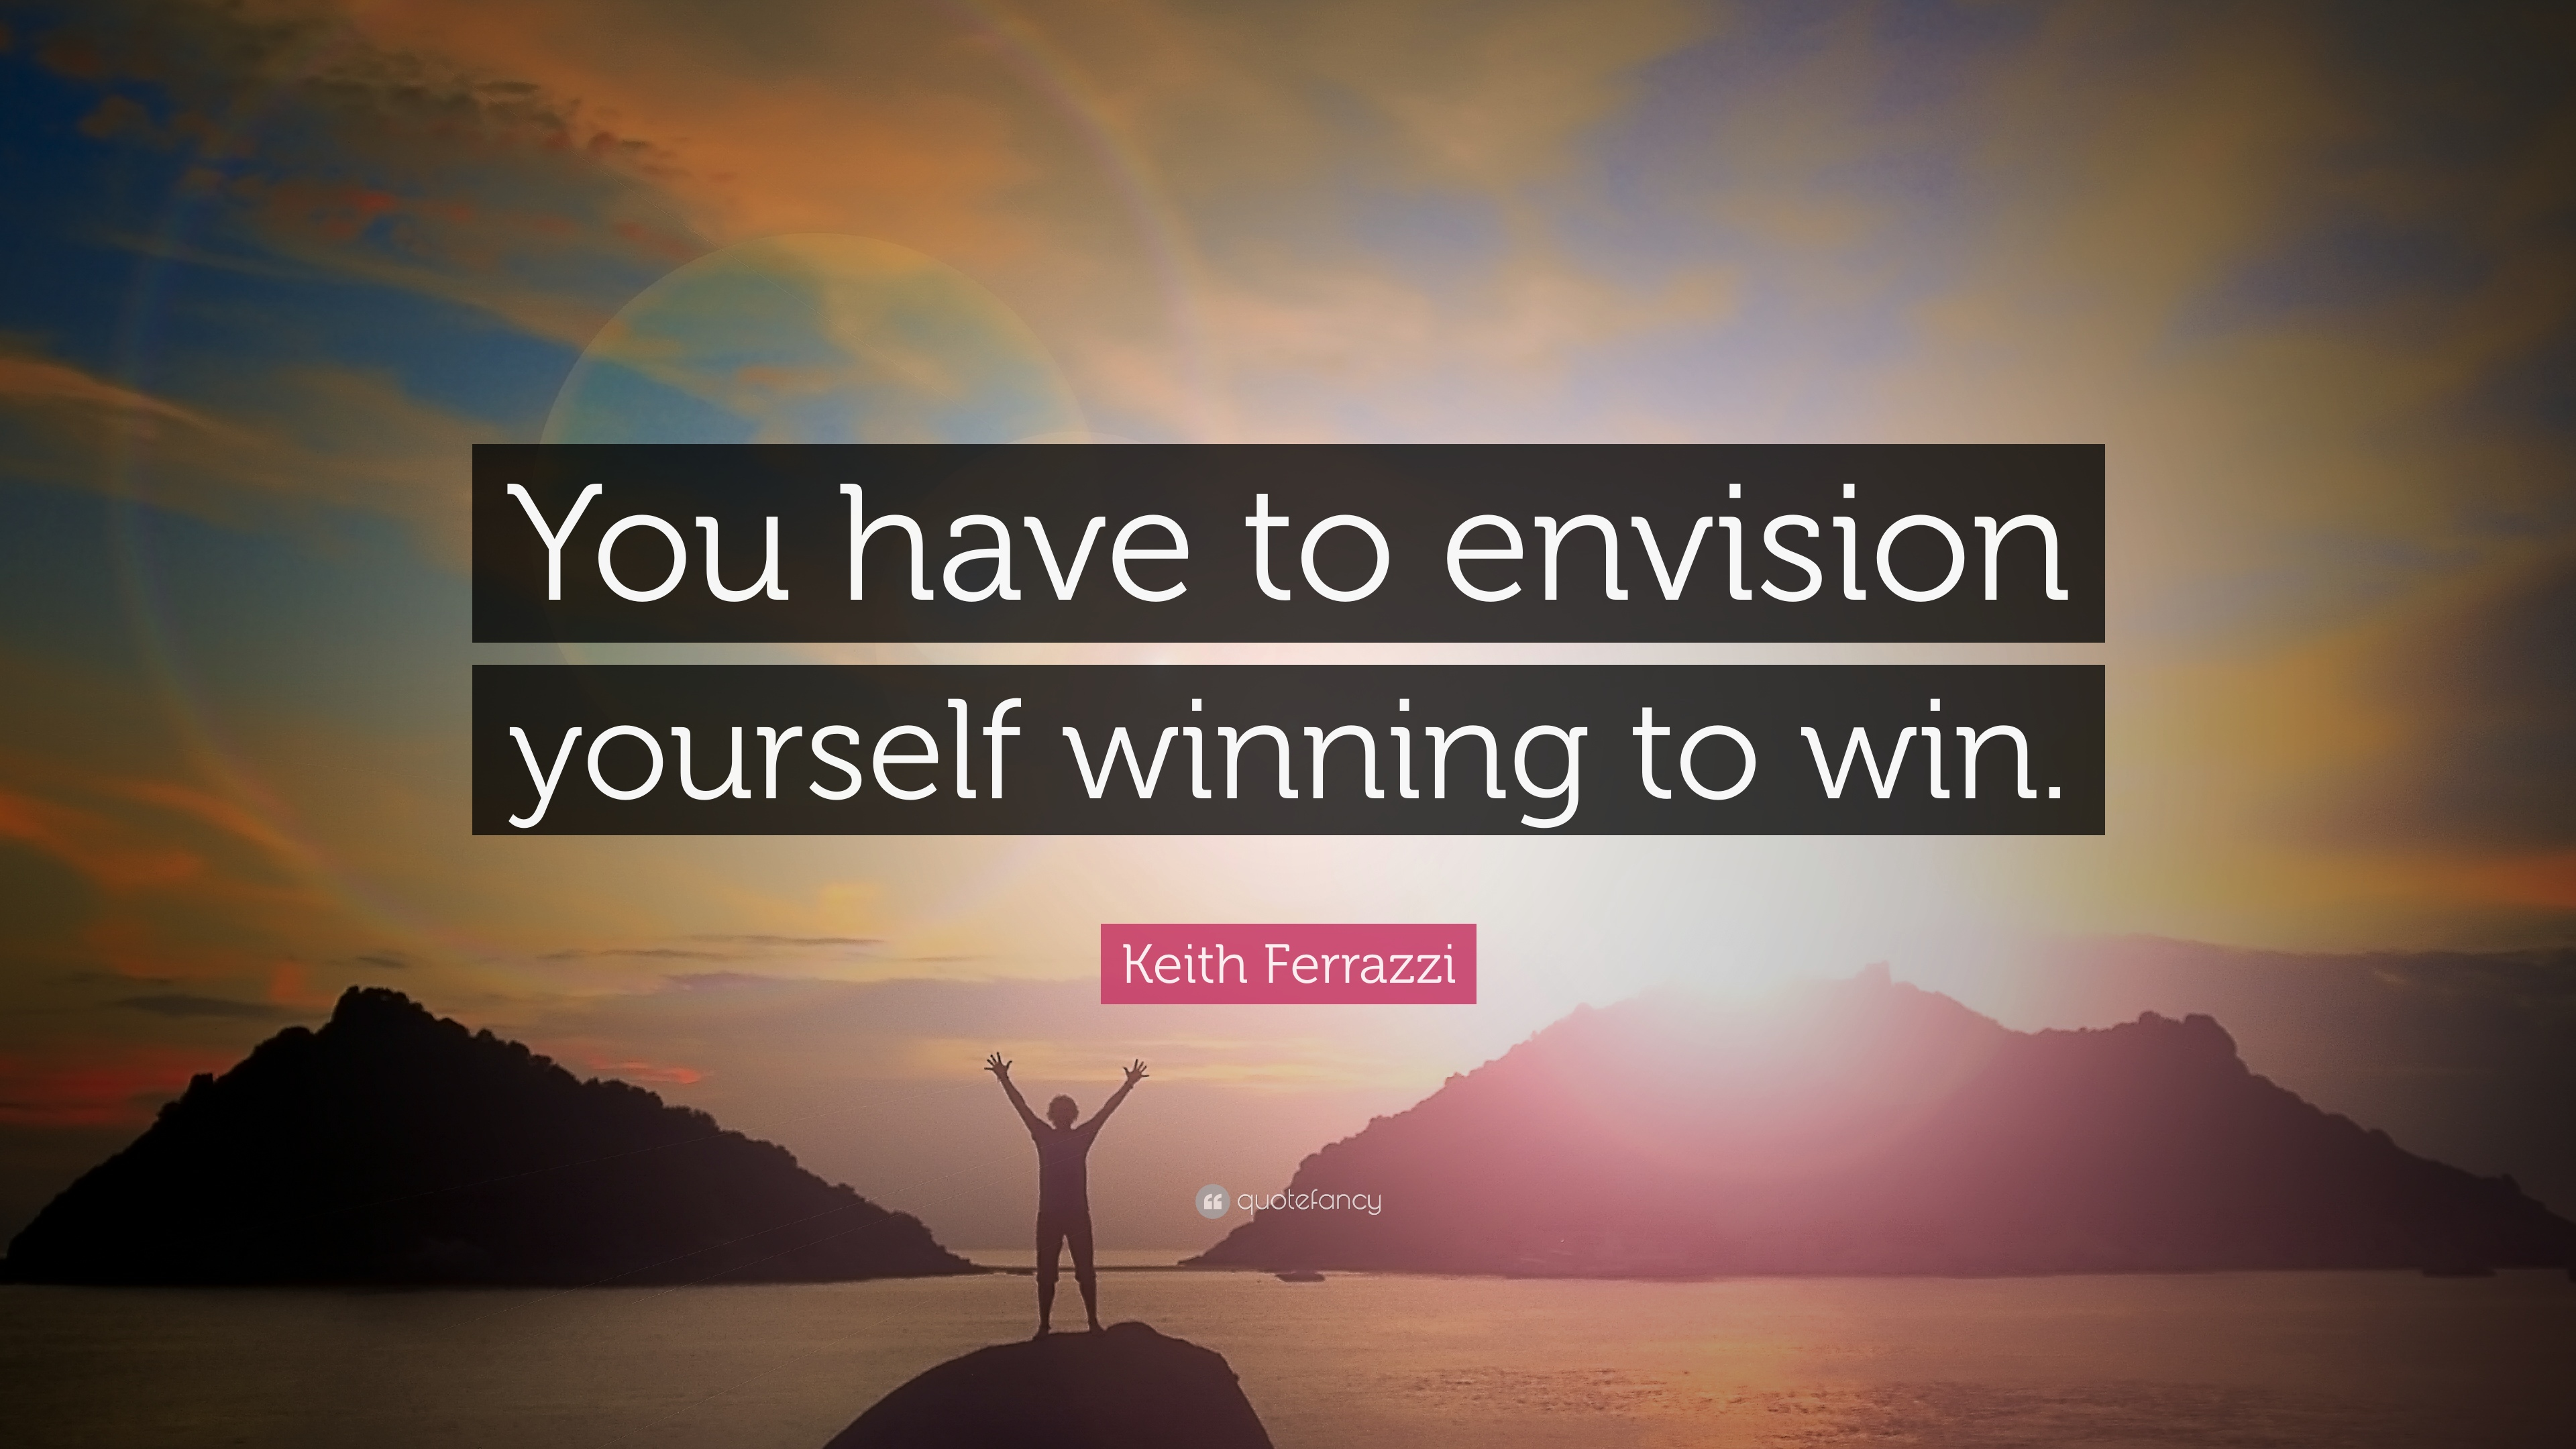 WIN YOURSELF IN YOURSELF 71